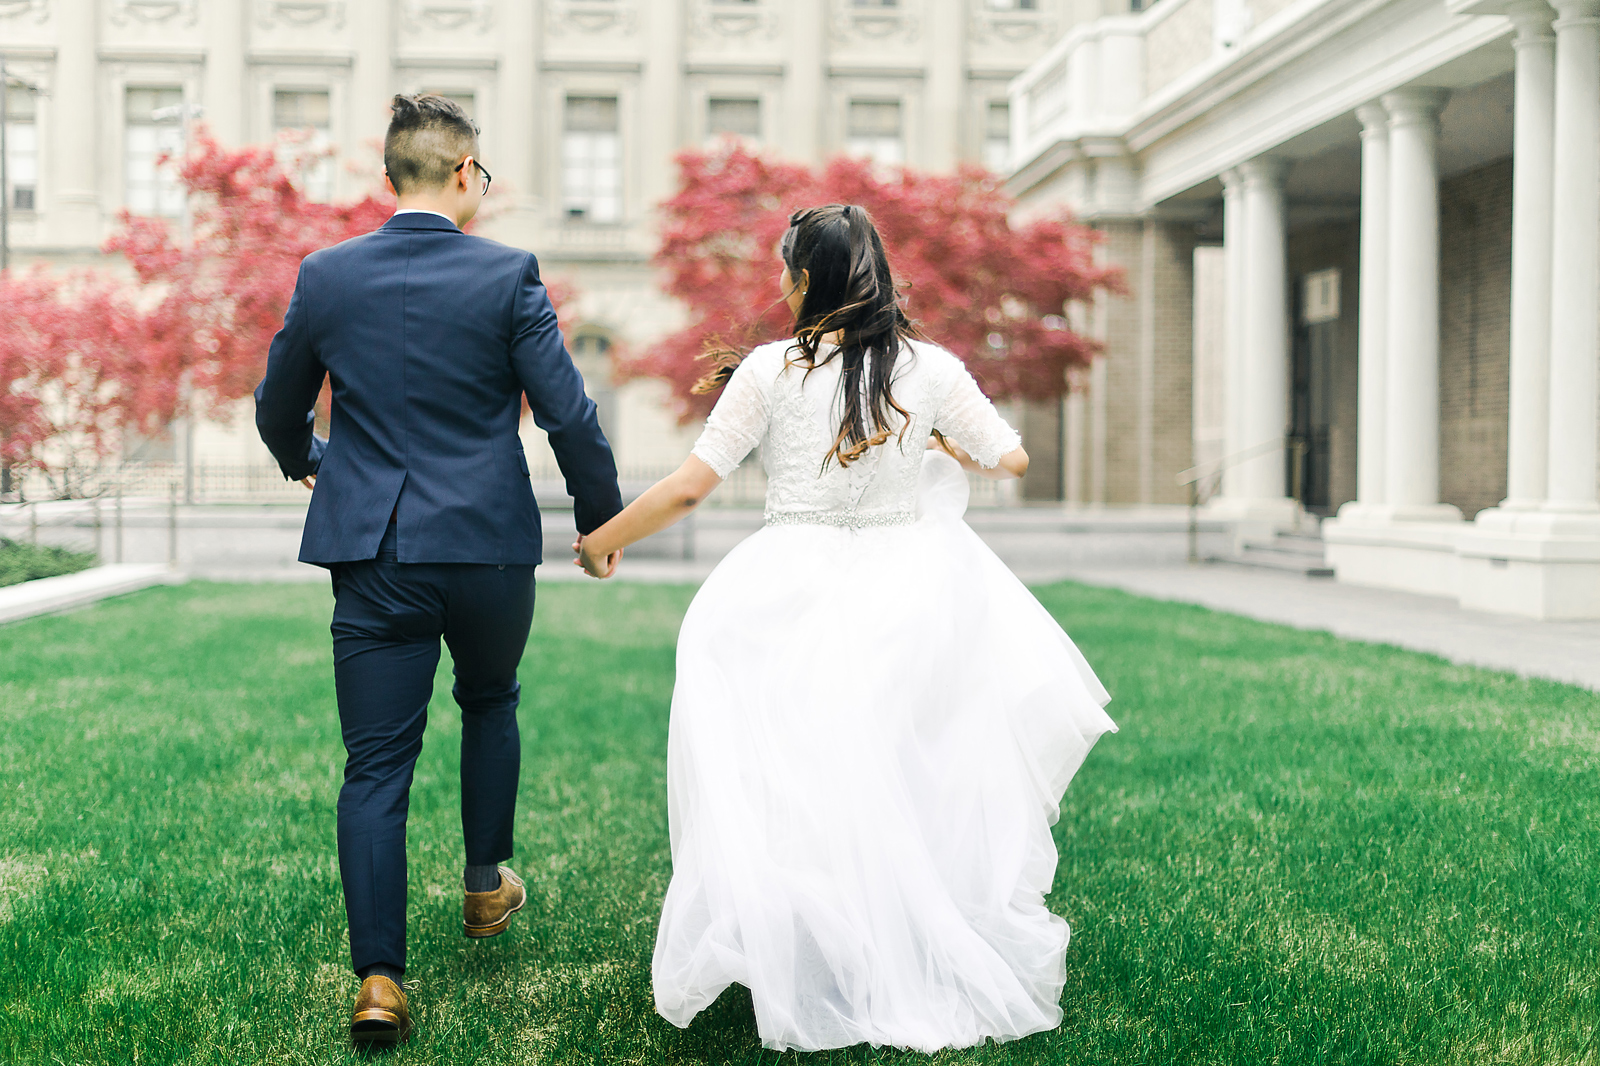 lds_philadelphia_temple_wedding_photography_009.jpg